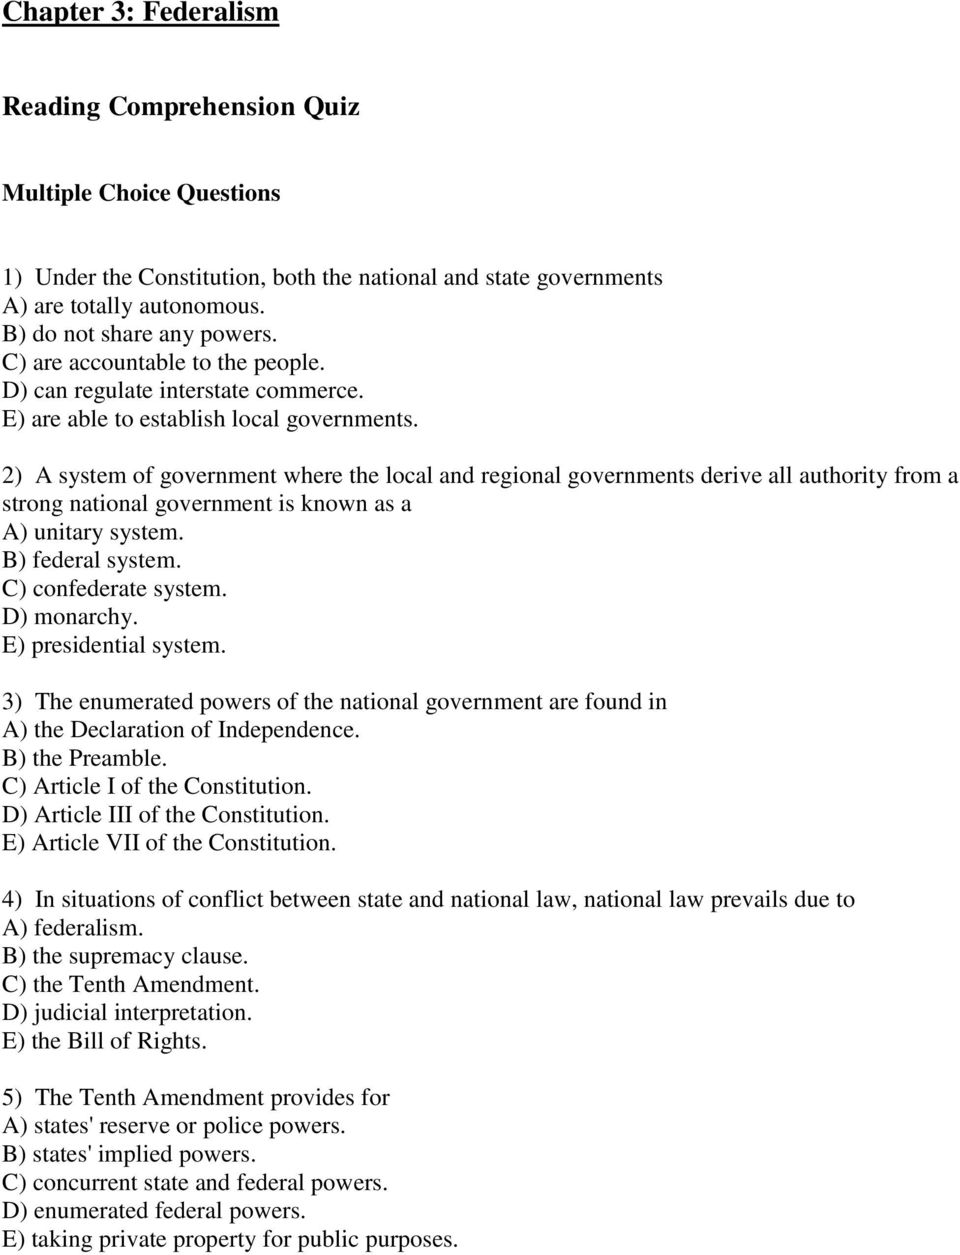 chapter federalism reading comprehension quiz multiple choice 2 a system of government where the local and regional governments derive all authority from